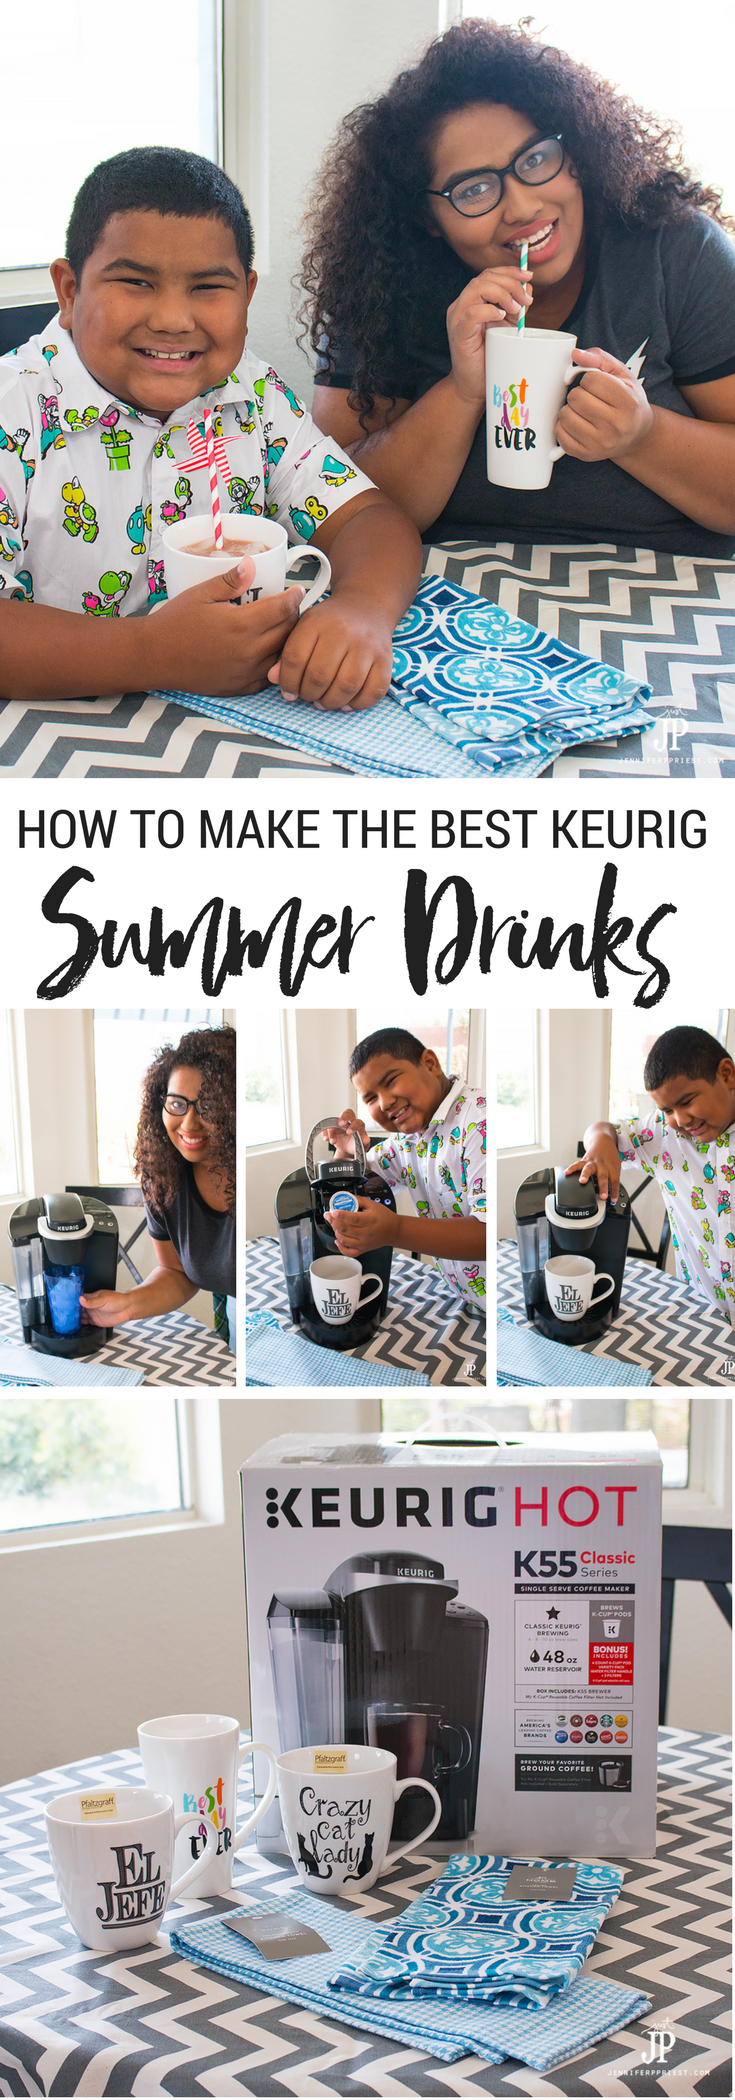 Keurig Summer Drinks - how to make iced drinks, tea with tea bags, and more in the Keurig - make summer drinks for the whole family!! See how: http://www.jenniferppriest.com/summer-drinks-jcpenney-soworthit/ #Soworthit @JCPenney [AD]